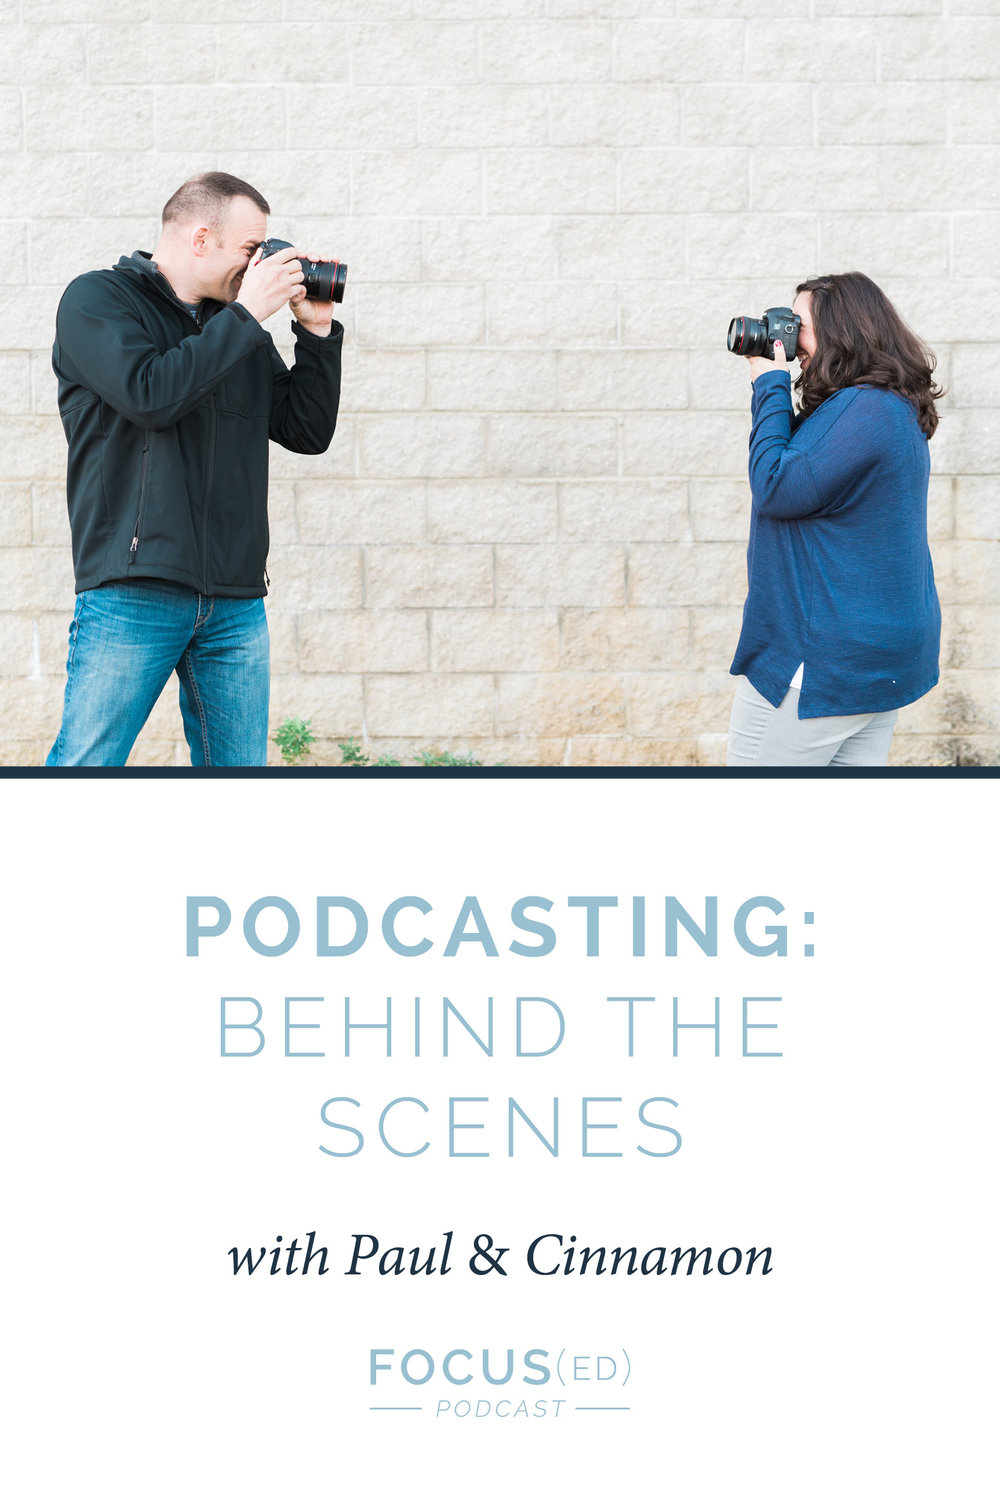 Podcasting: Behind the Scenes with Paul & Cinnamon  |  Focus(ed) Podcast 065